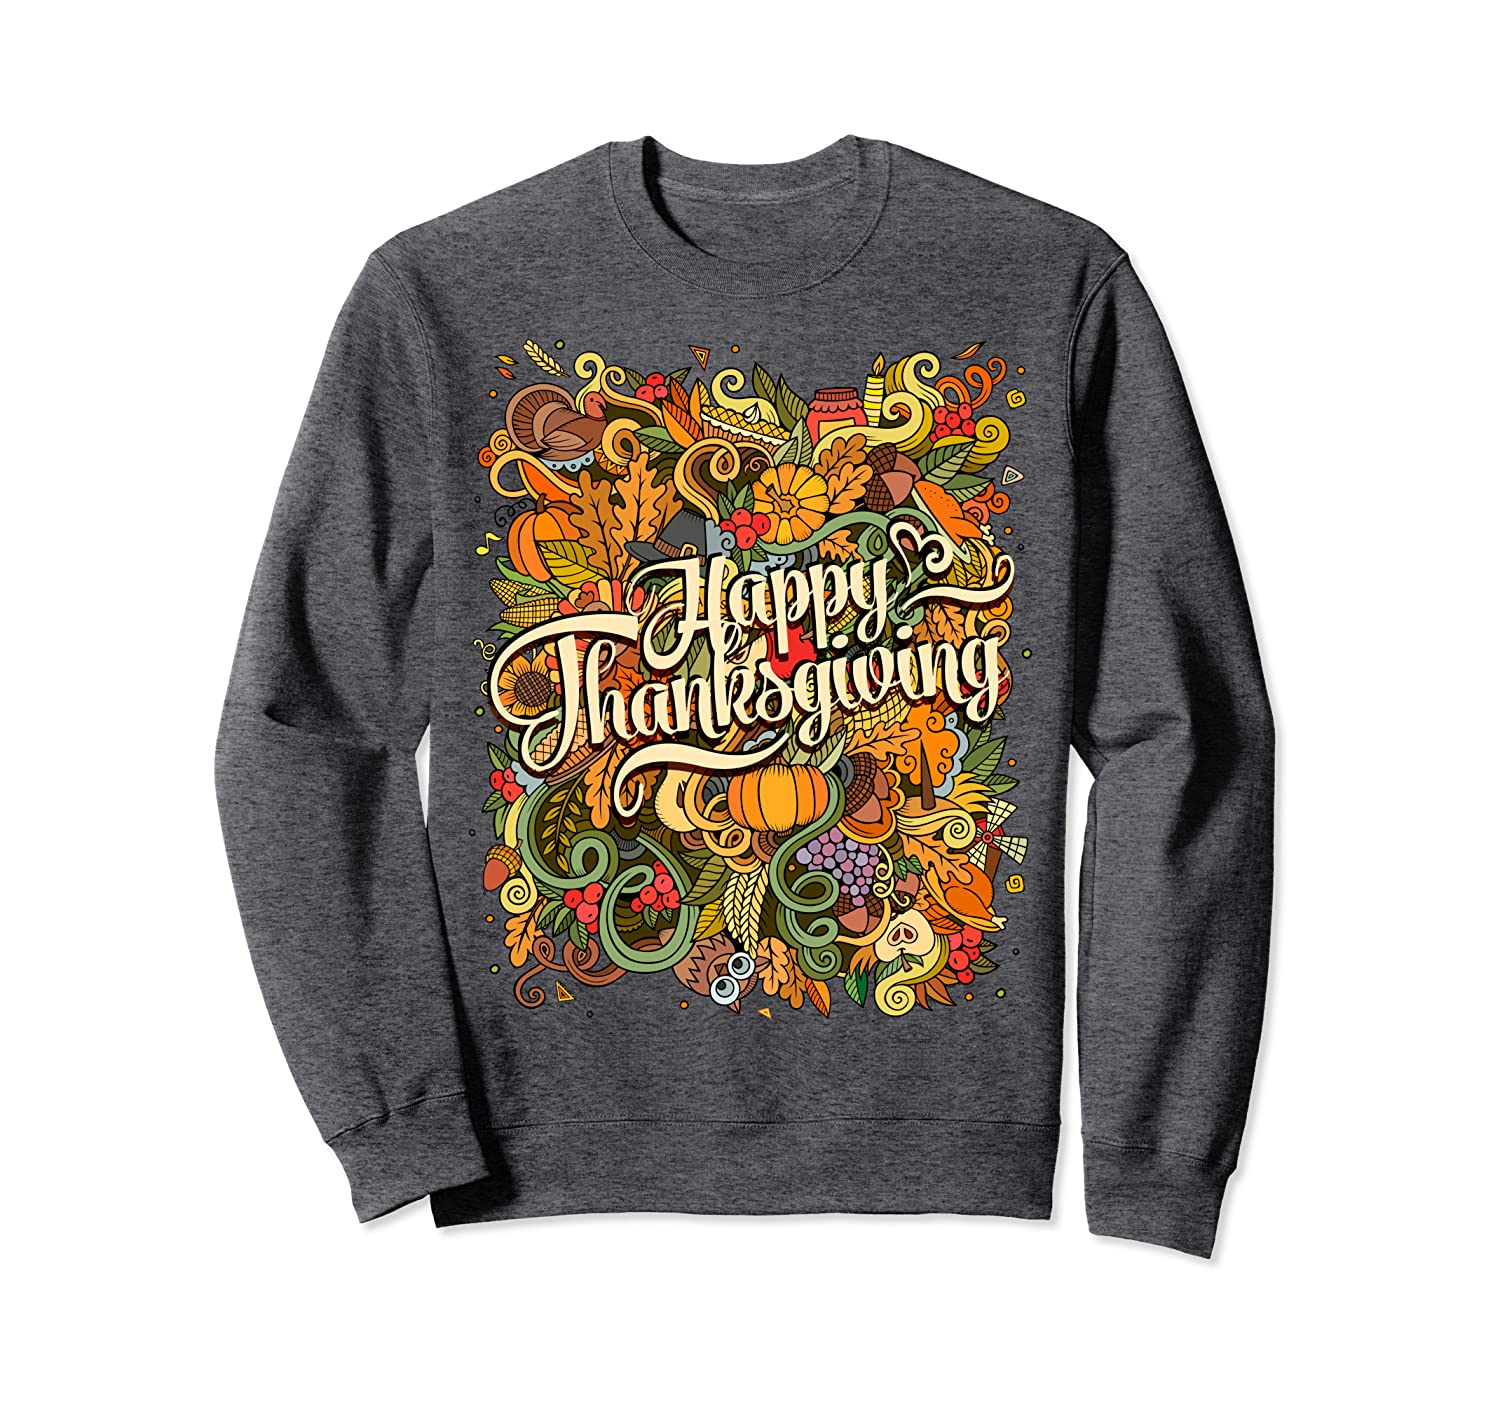 Happy Thanksgiving Day Hello Fall Harvest Parade Turkey Day Sweatshirt